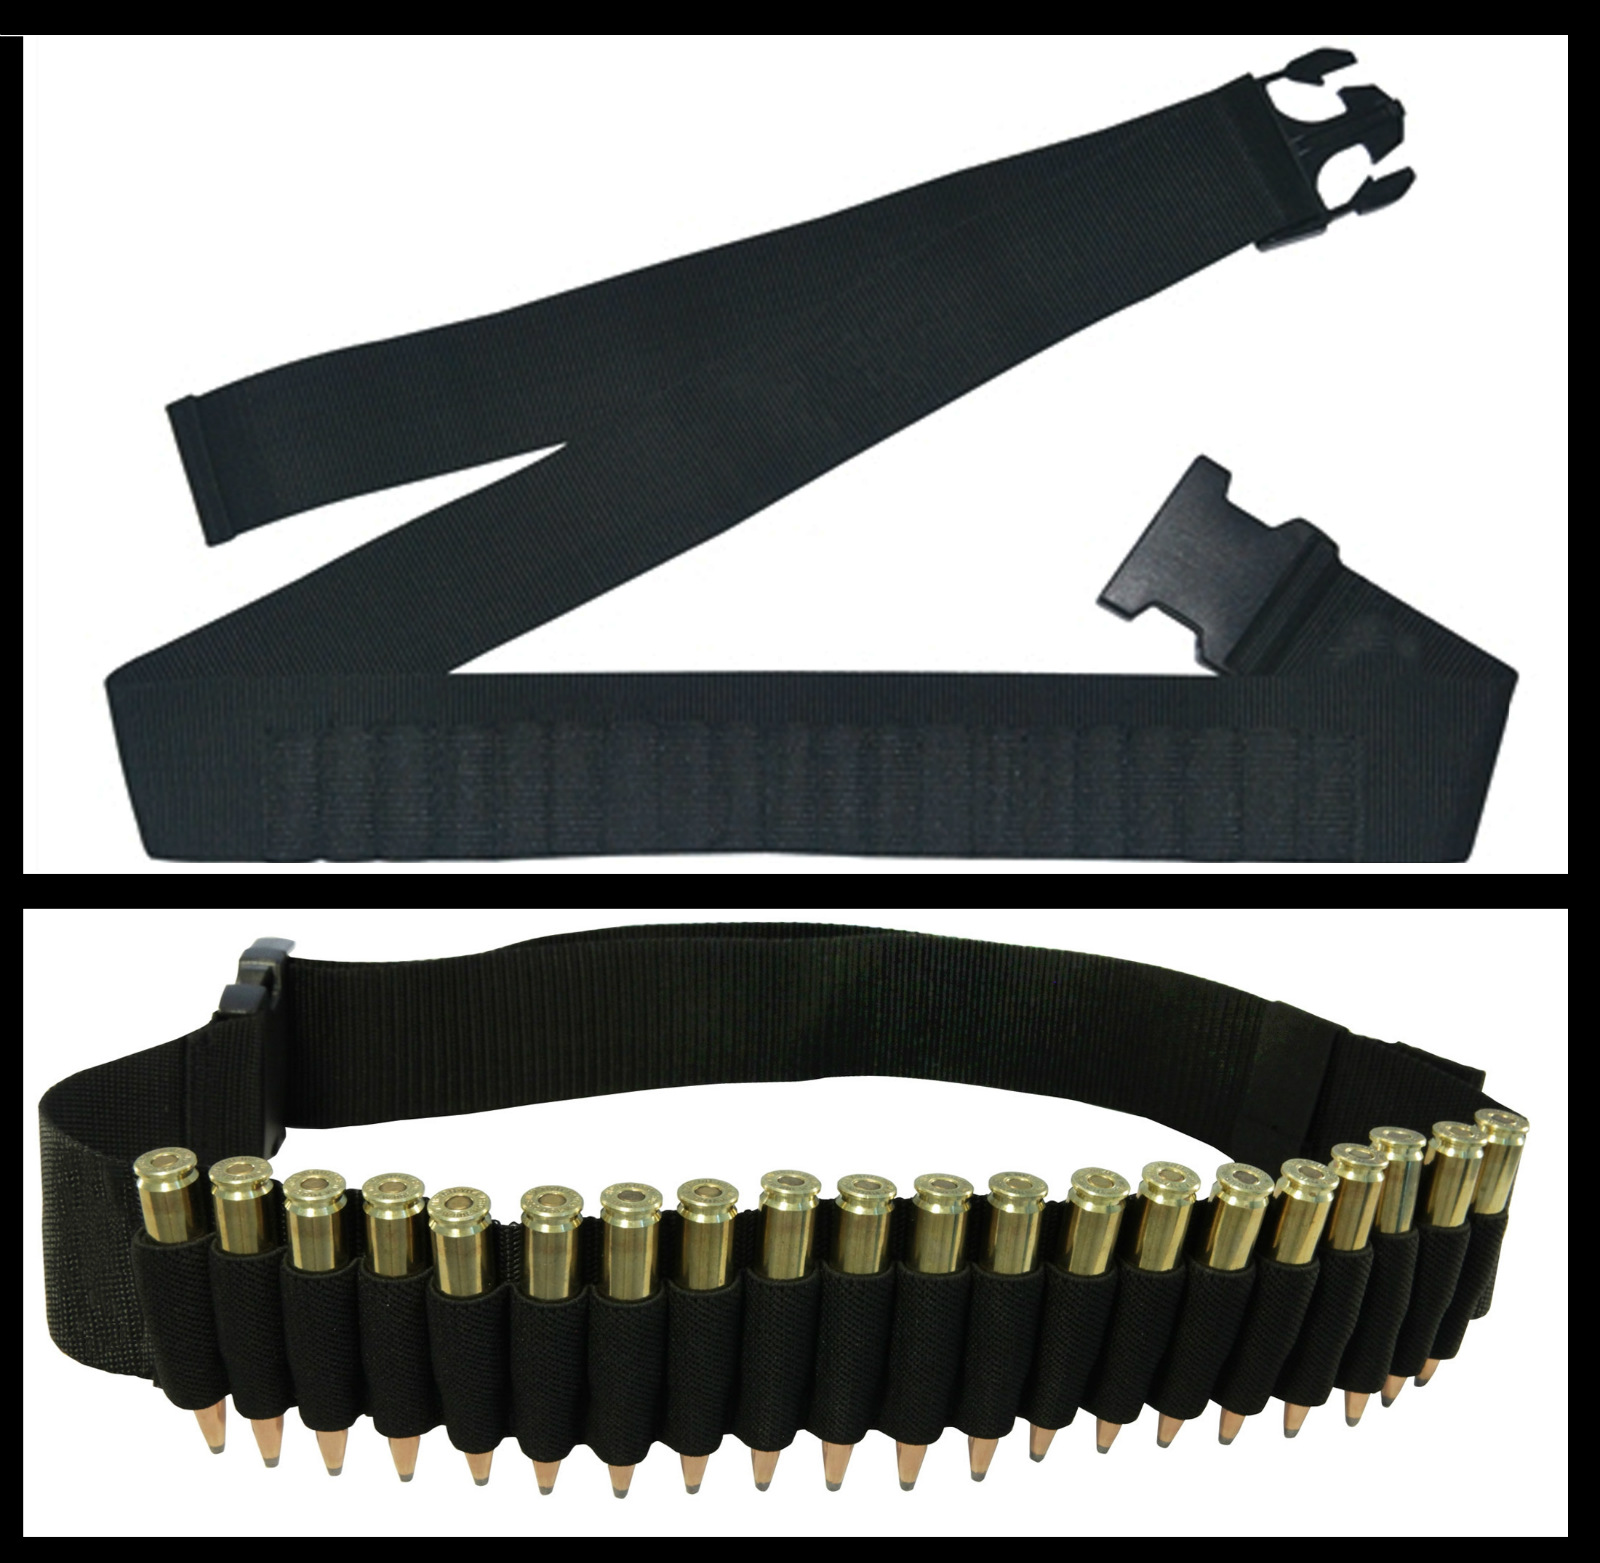 Ultimate Arms Gear Stealth Black 20 Round Rifle Cartridge Ammunition Ammo Reload Carrier Tactical Belt Fits .223 223 5.56 556 Winchester Model 700 Bolt Lever Action Sniper Hunting Rifle